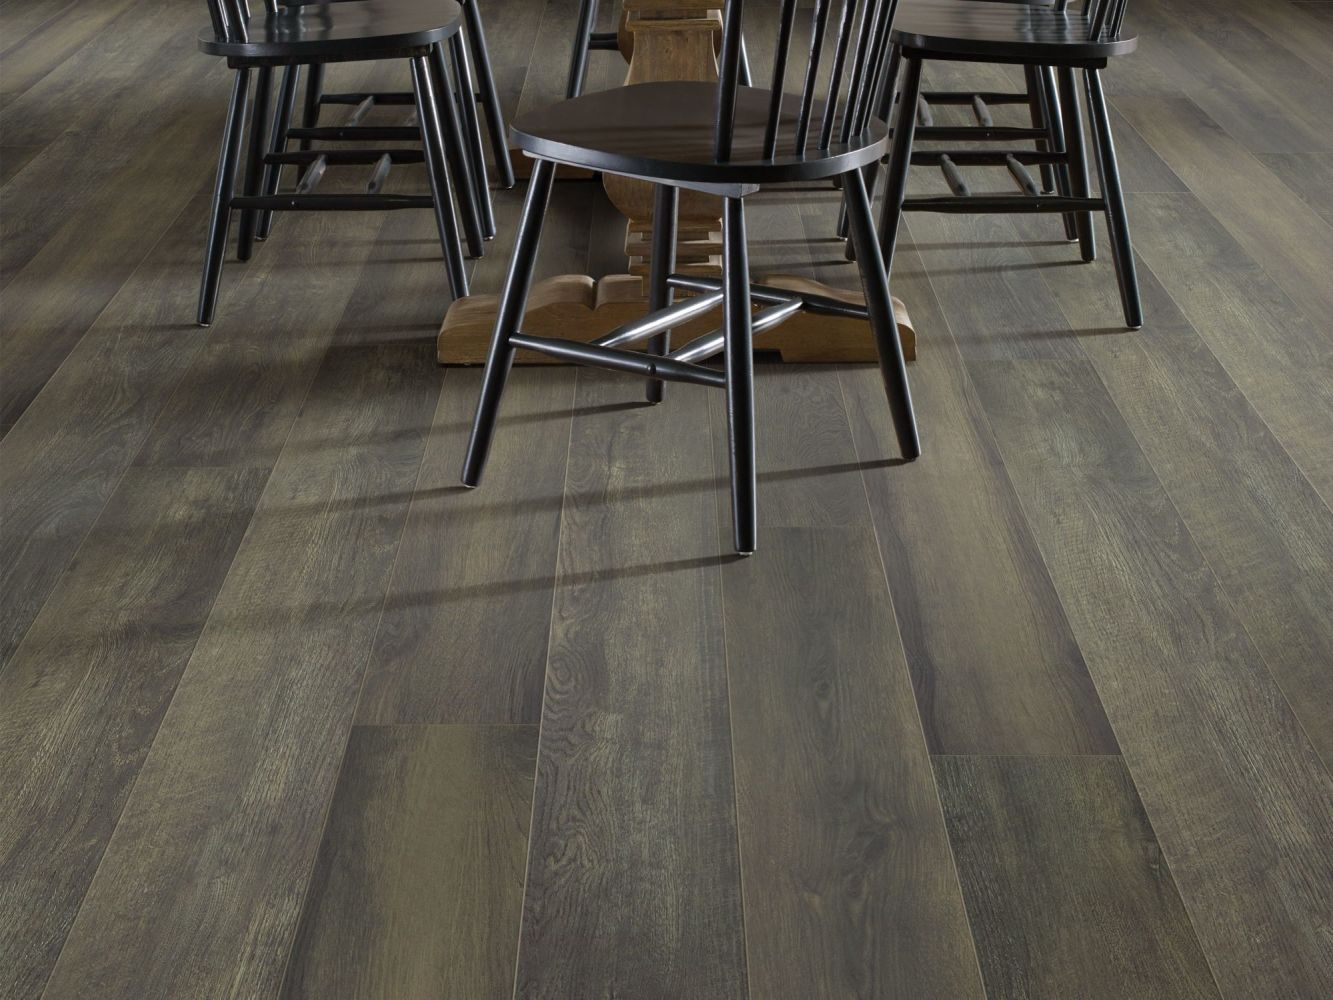 Shaw Floors Resilient Residential Paragon XL HD Plus Black Coffee Oak 00916_2033V